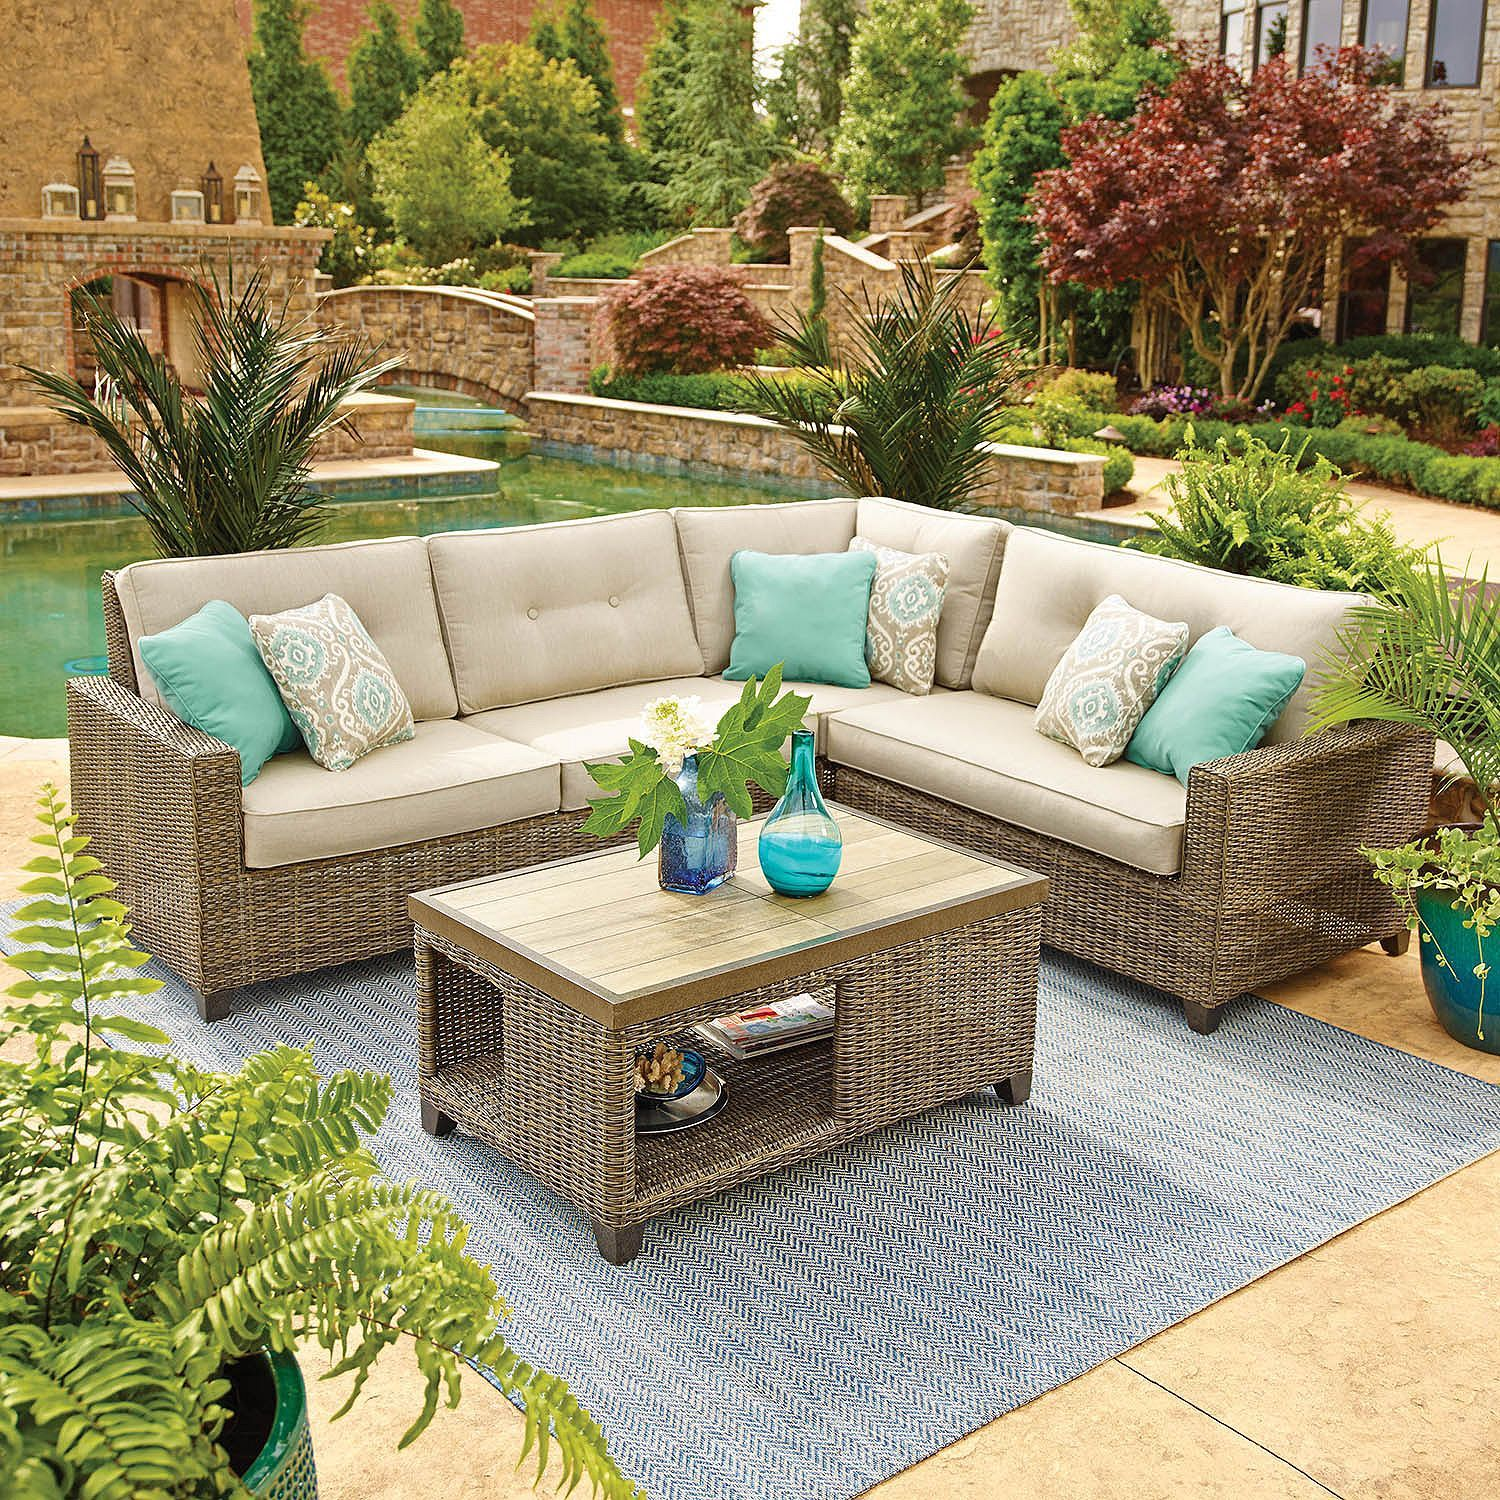 Member S Mark Agio Collection Park Place Sunbrella Seating Set Sam S Club Outdoor Furniture Cheap Patio Furniture Rustic Outdoor Spaces